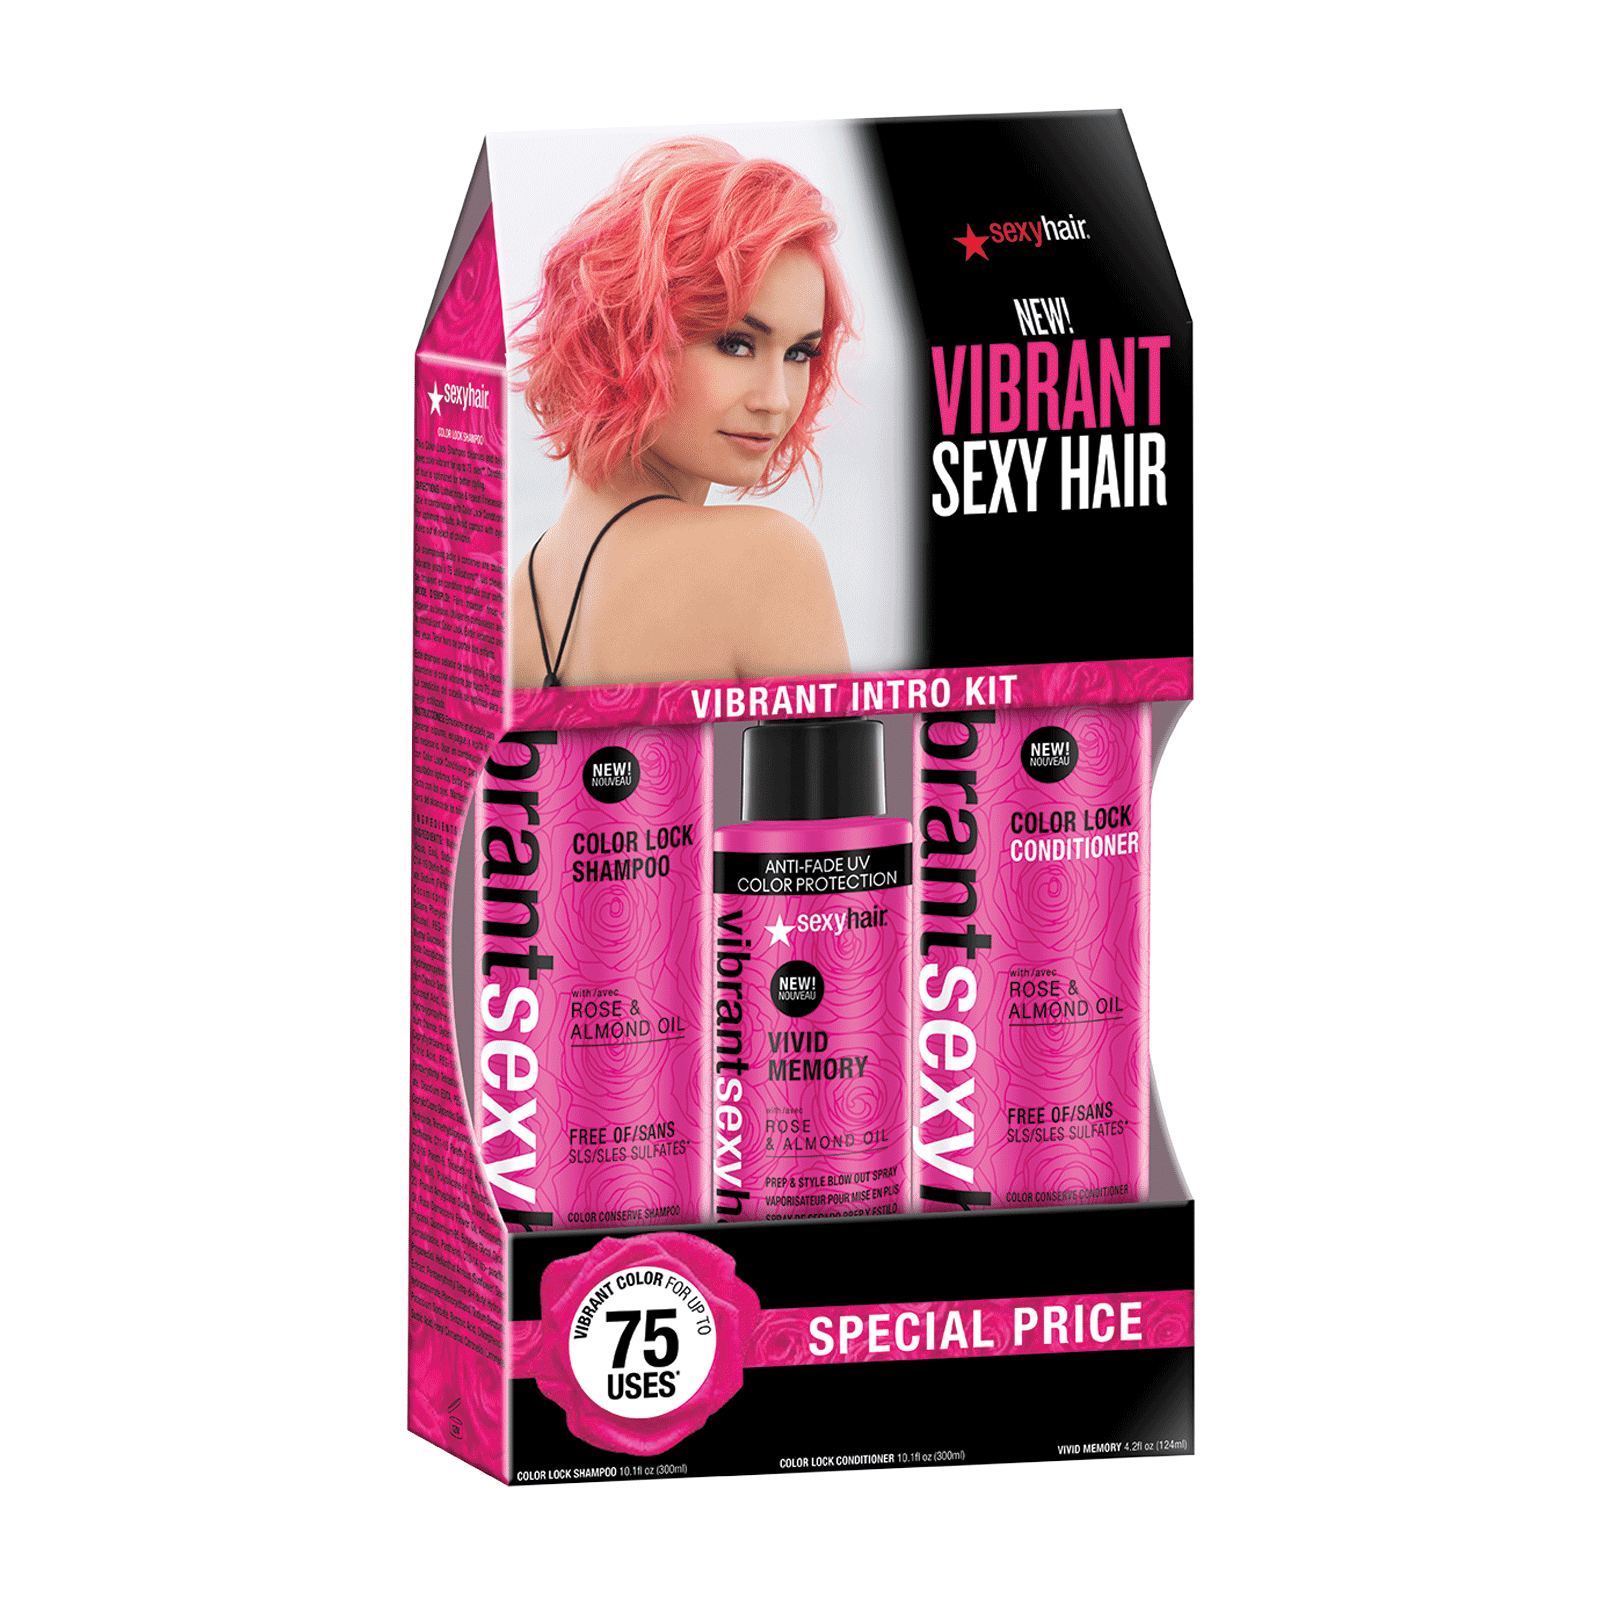 Vibrant Color Lock Shampoo Conditioner Memory Blow Dry Sexy Hair